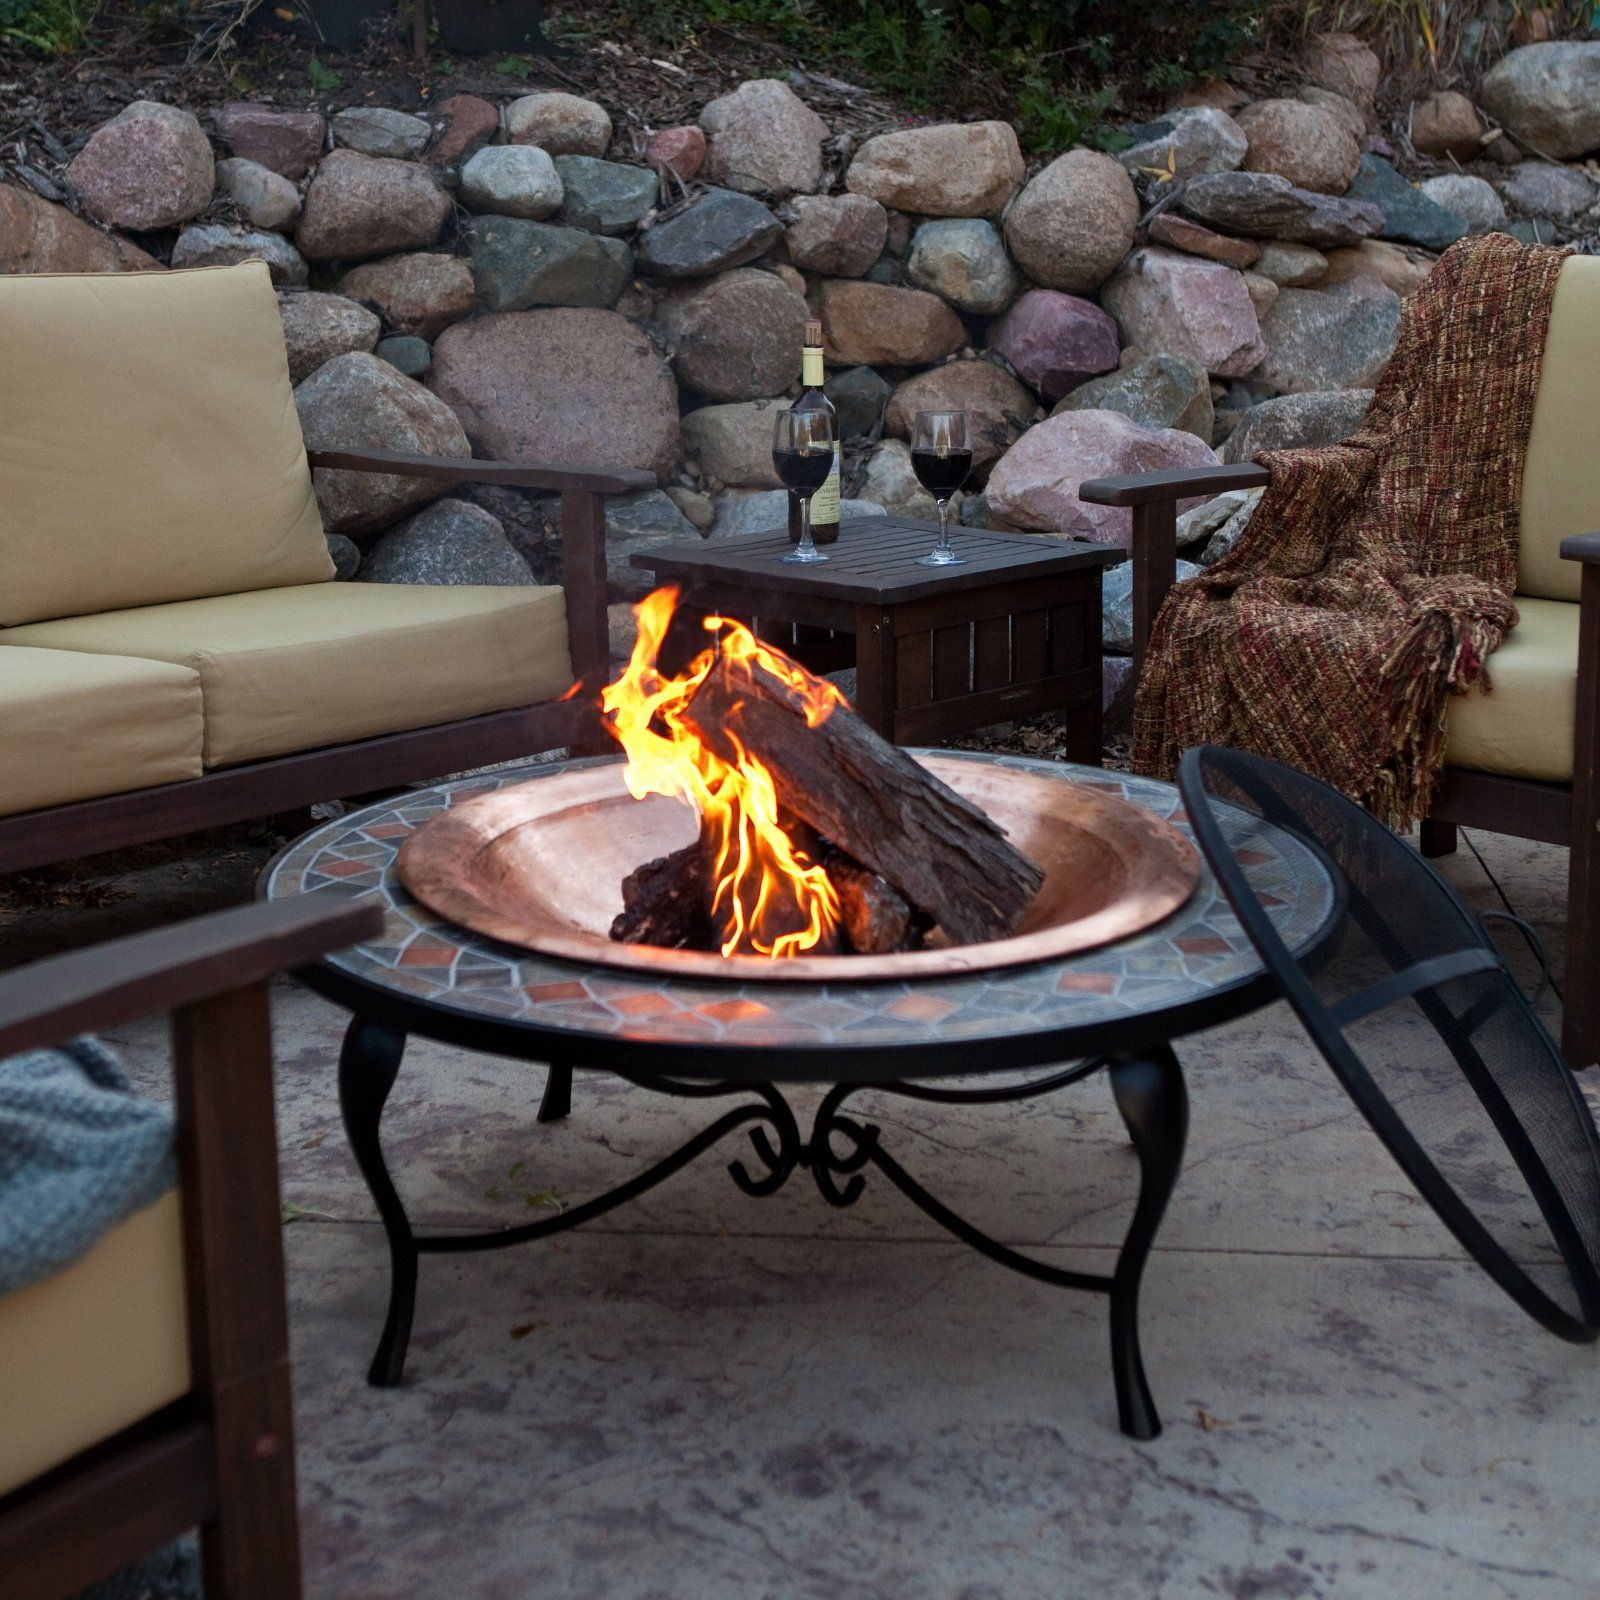 Mosaic 40 Inch Surround Fire Pit with Copper Fire Bowl